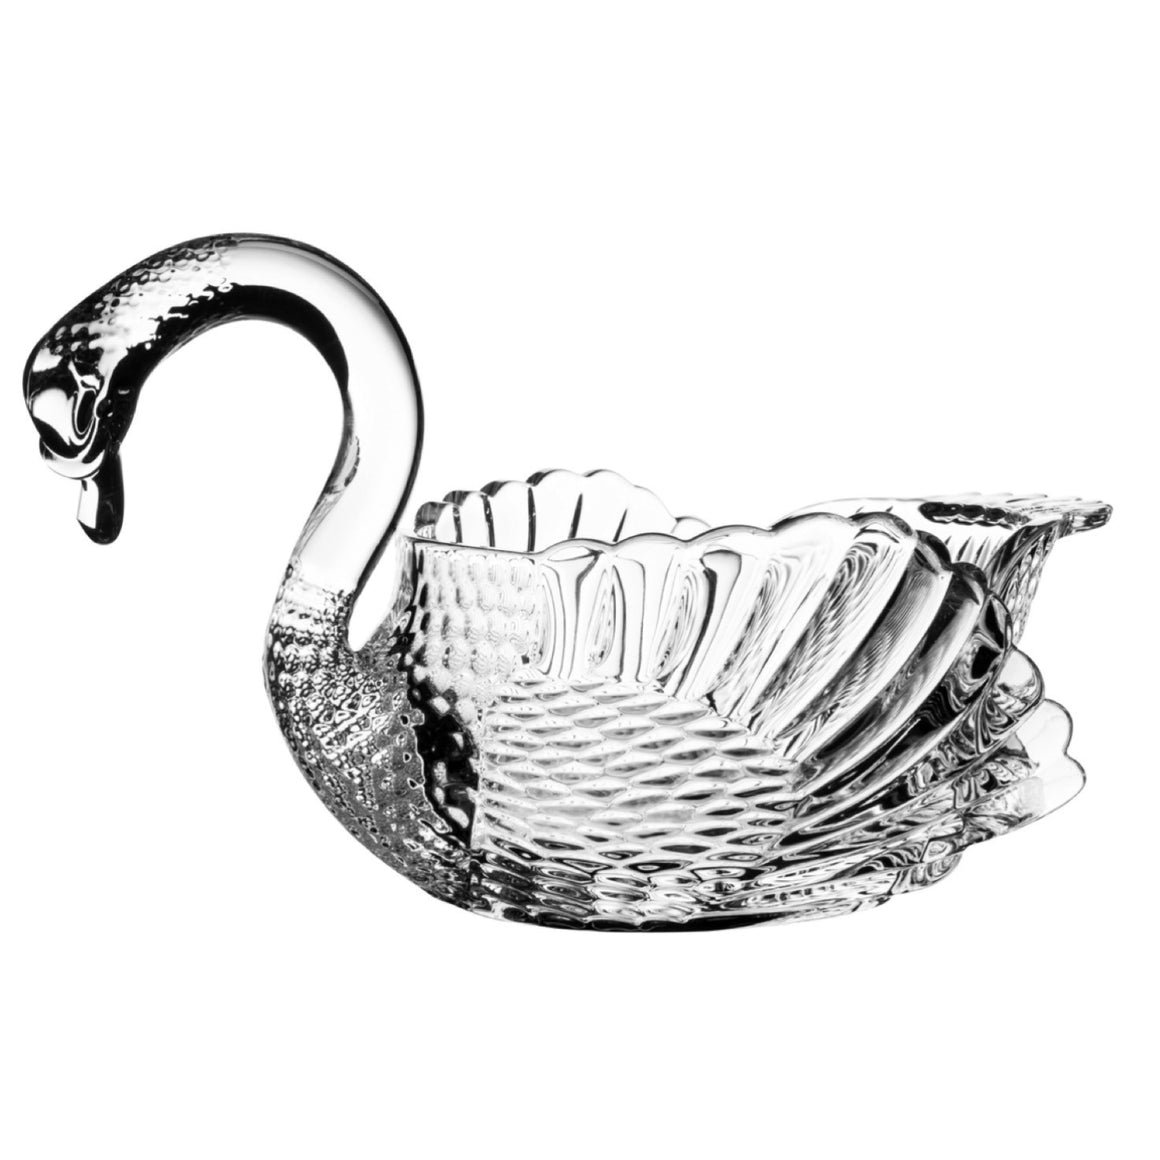 Princess Swan Crystal Bowl - The Crystal Wonderland